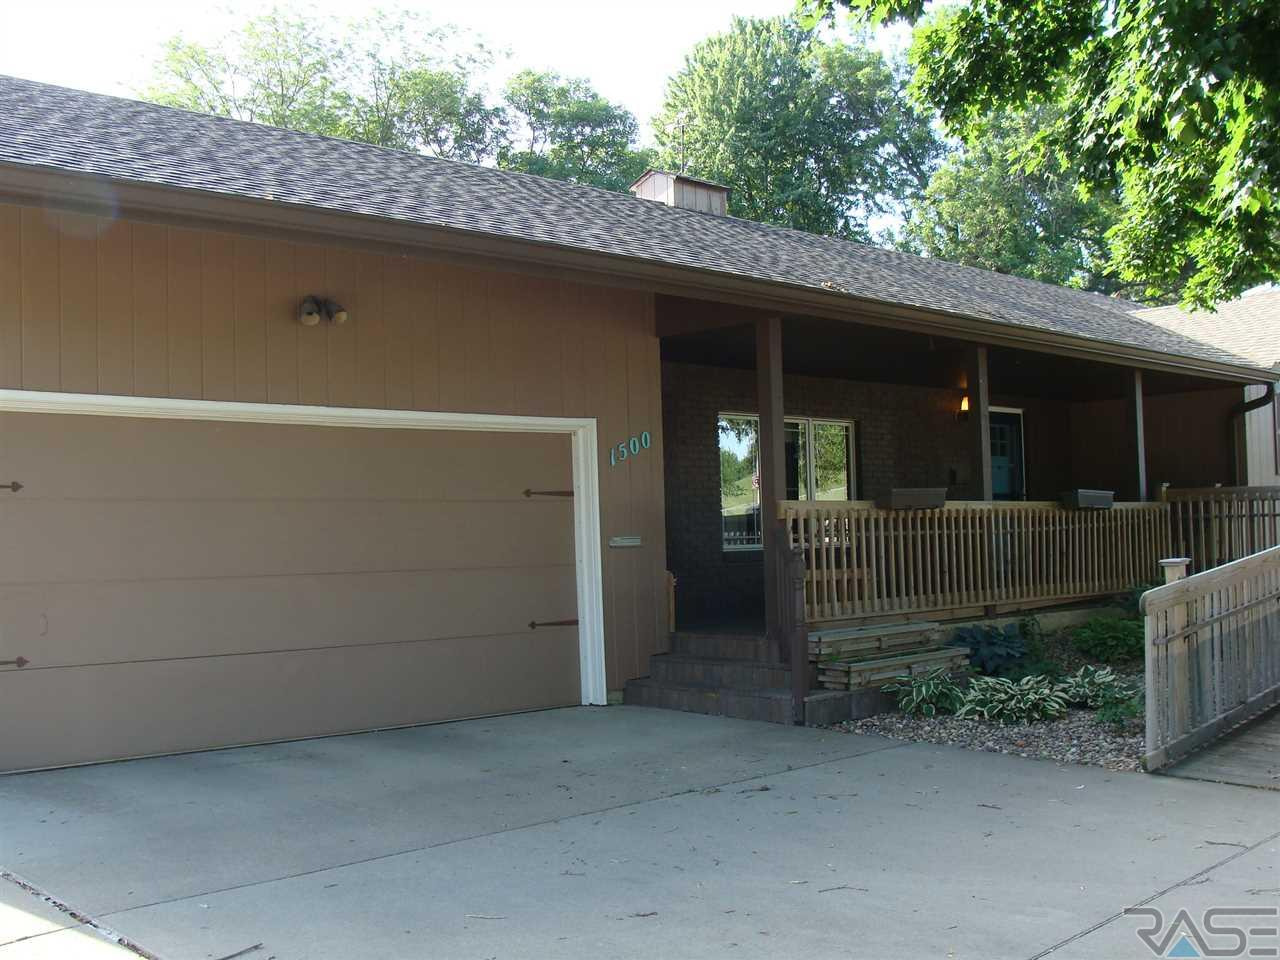 1500 S Kiwanis Ave, Sioux Falls, SD 57105